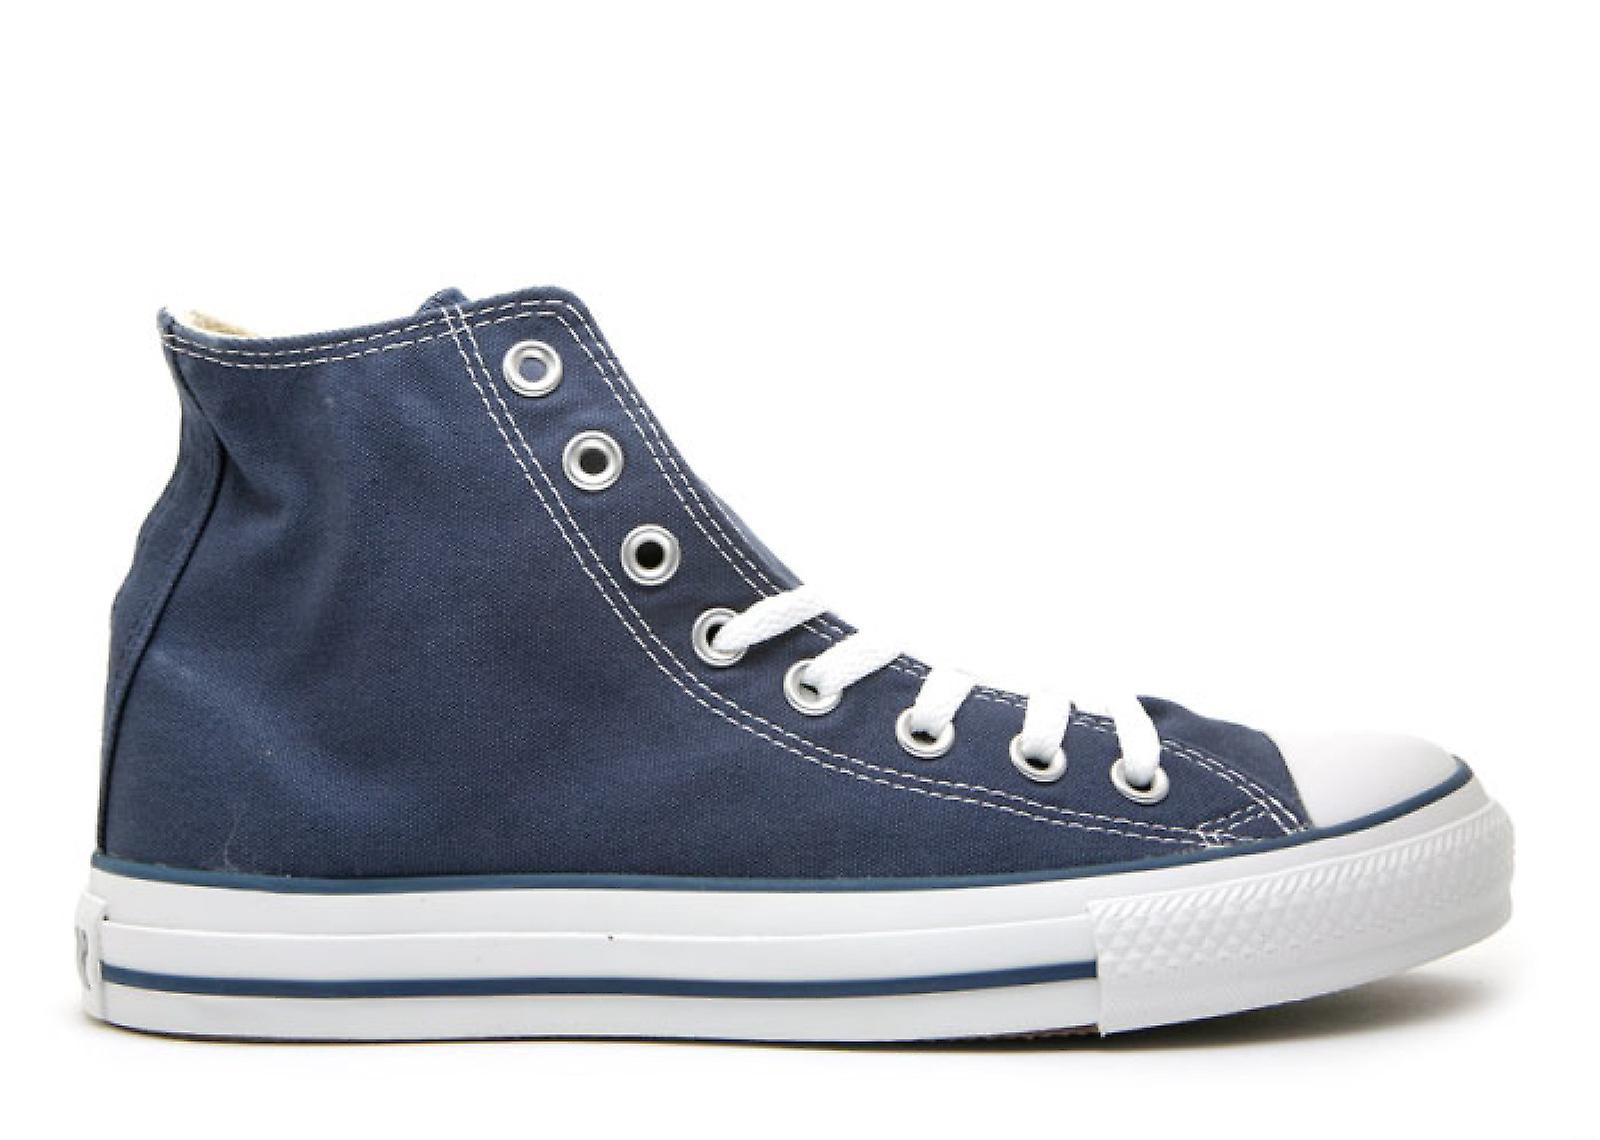 All Star Hi - M9622 - chaussures